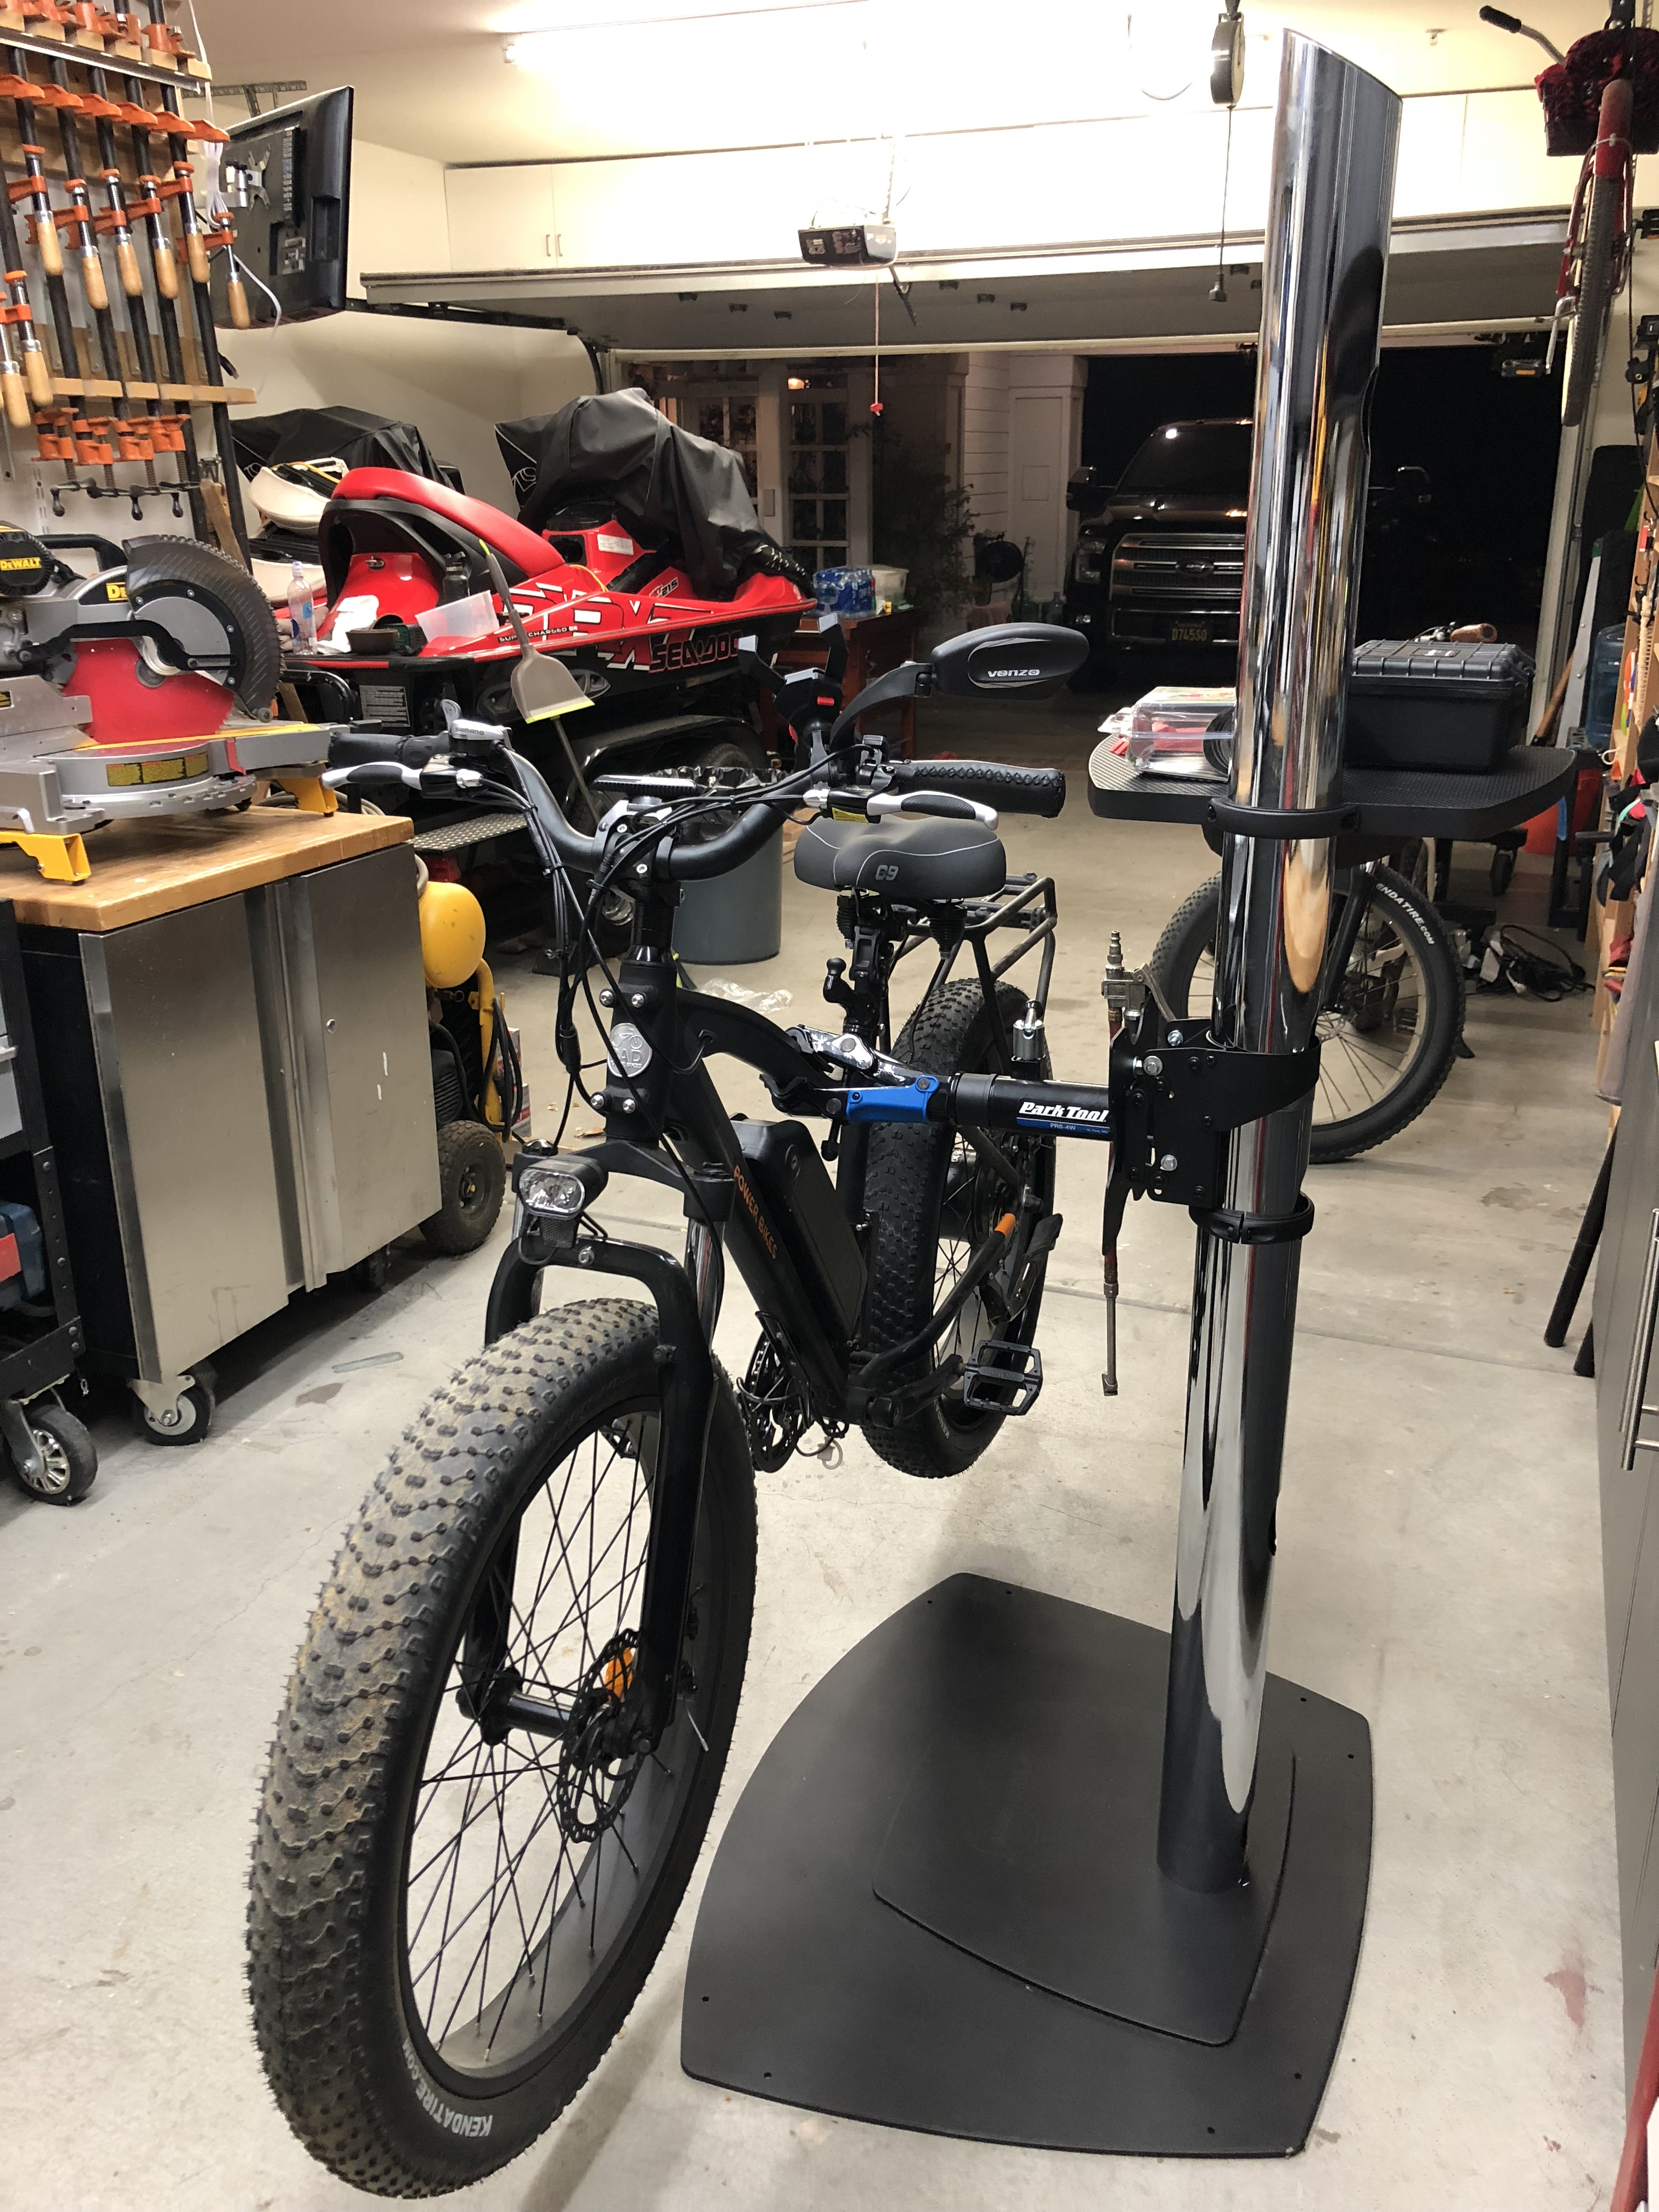 Rad Rover Bike Repair Stand Made from a TV Stand | Electric